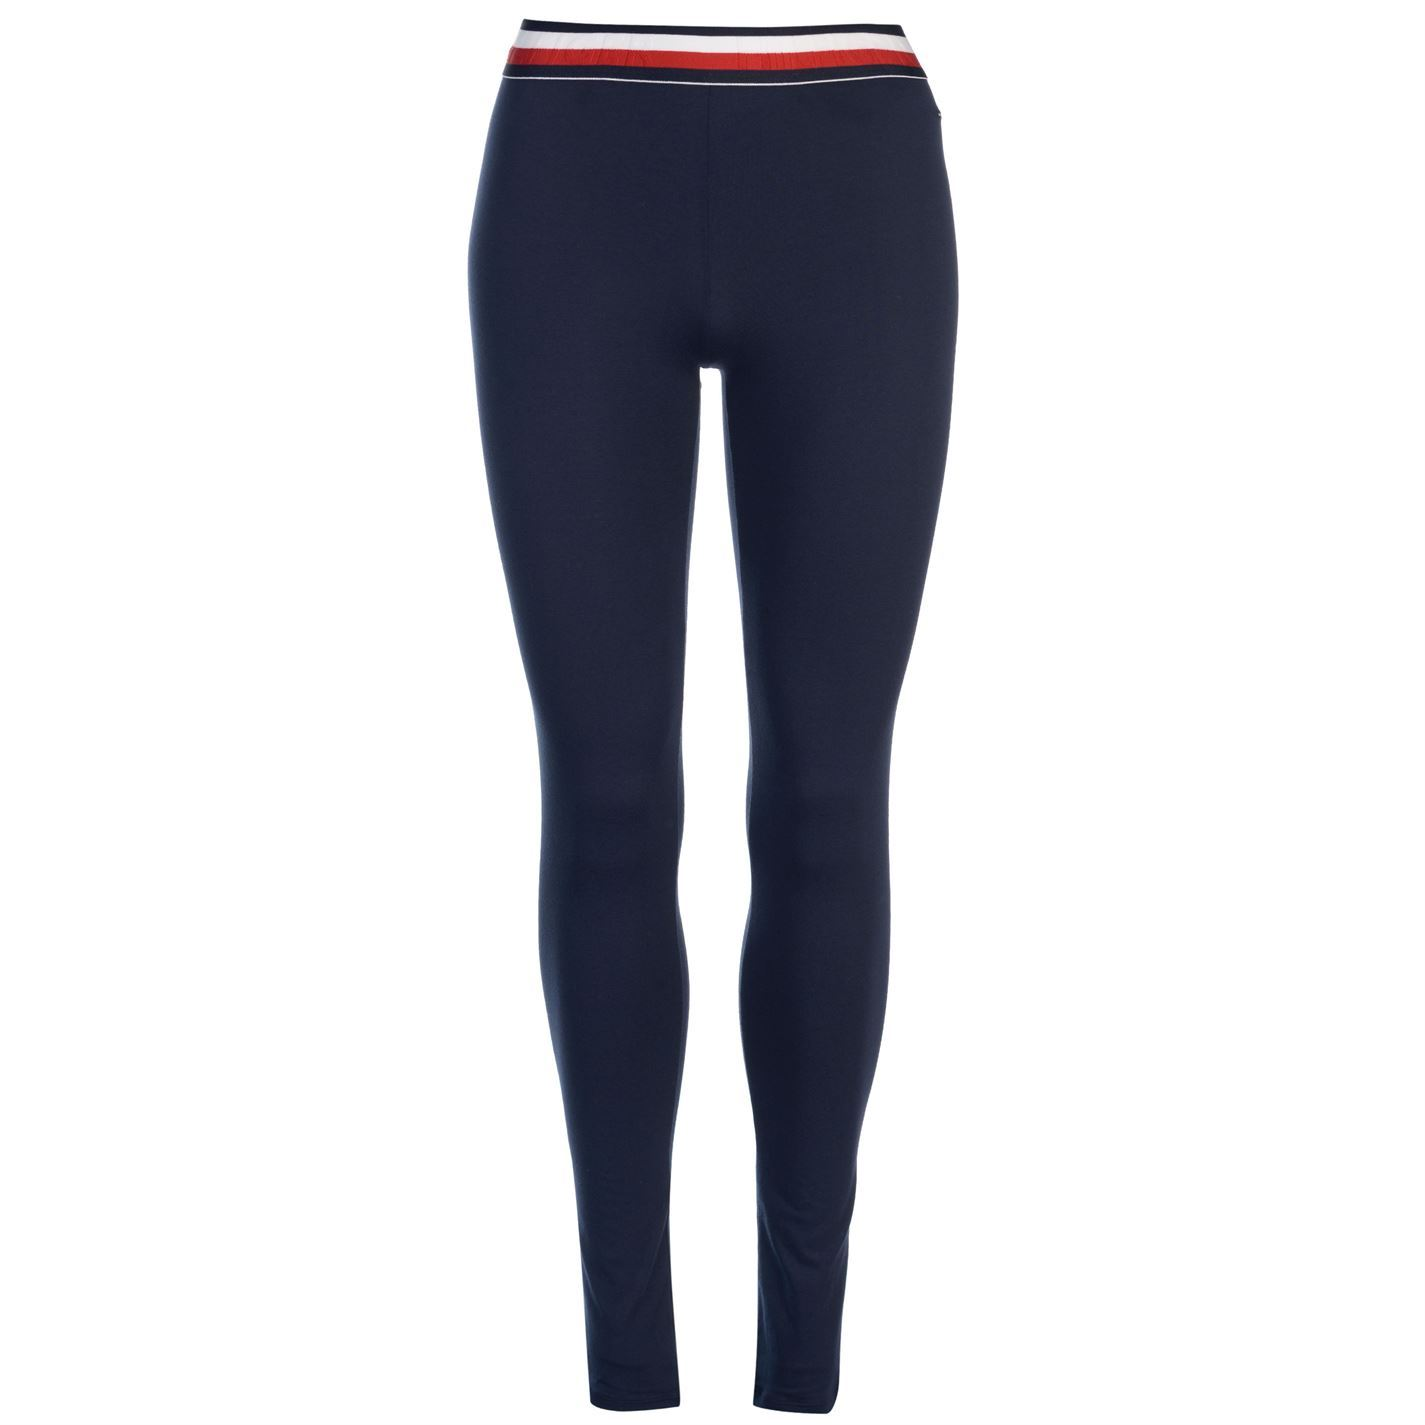 30c1d1e98f286 Image is loading Womens-Tommy-Hilfiger-Band-Leggings-Stretch-New